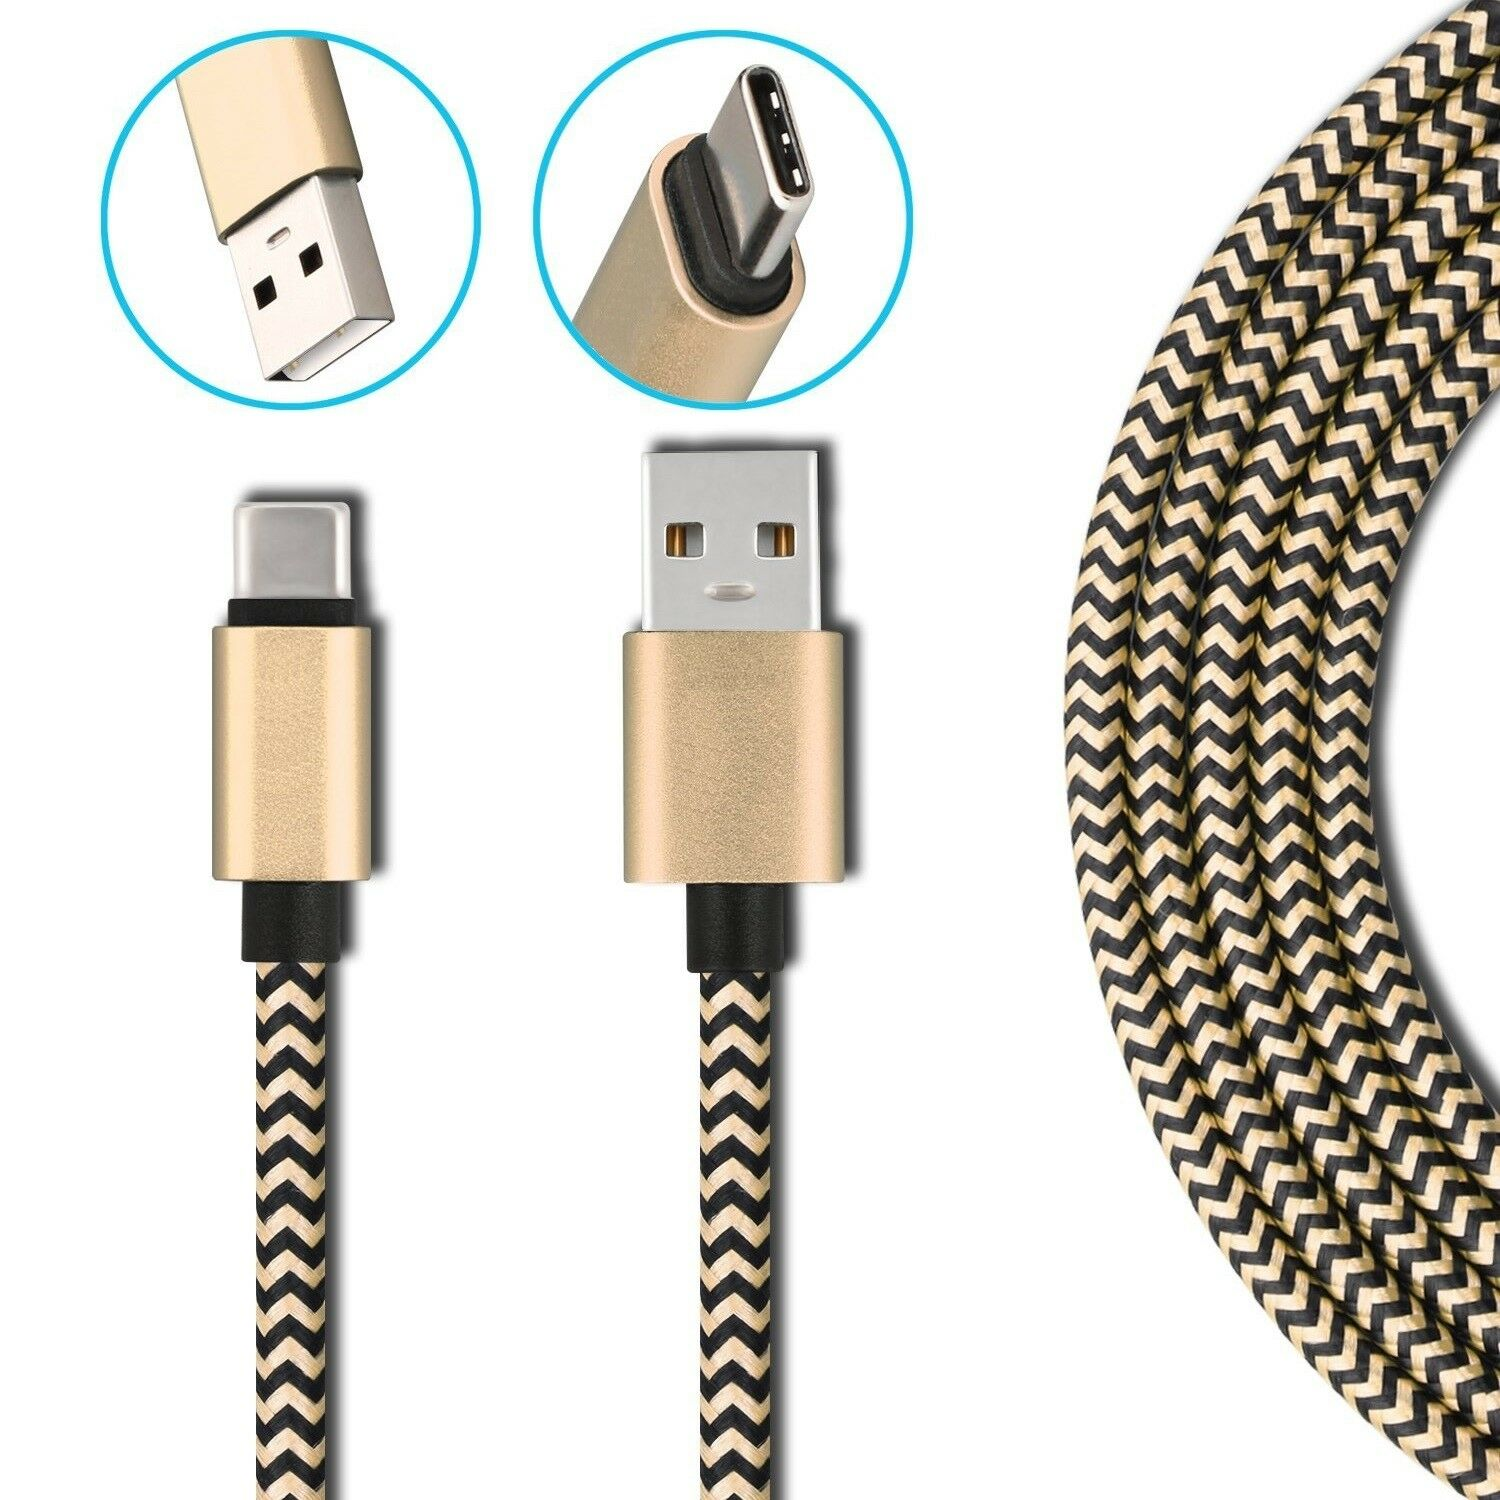 Durable Braided Fast Charge USB C Type C Data Phone Charger Cable for <font><b>Samsung</b></font> Galaxy A80 A70 A50 A40 A30 A20e Note 10 Plus S10E image